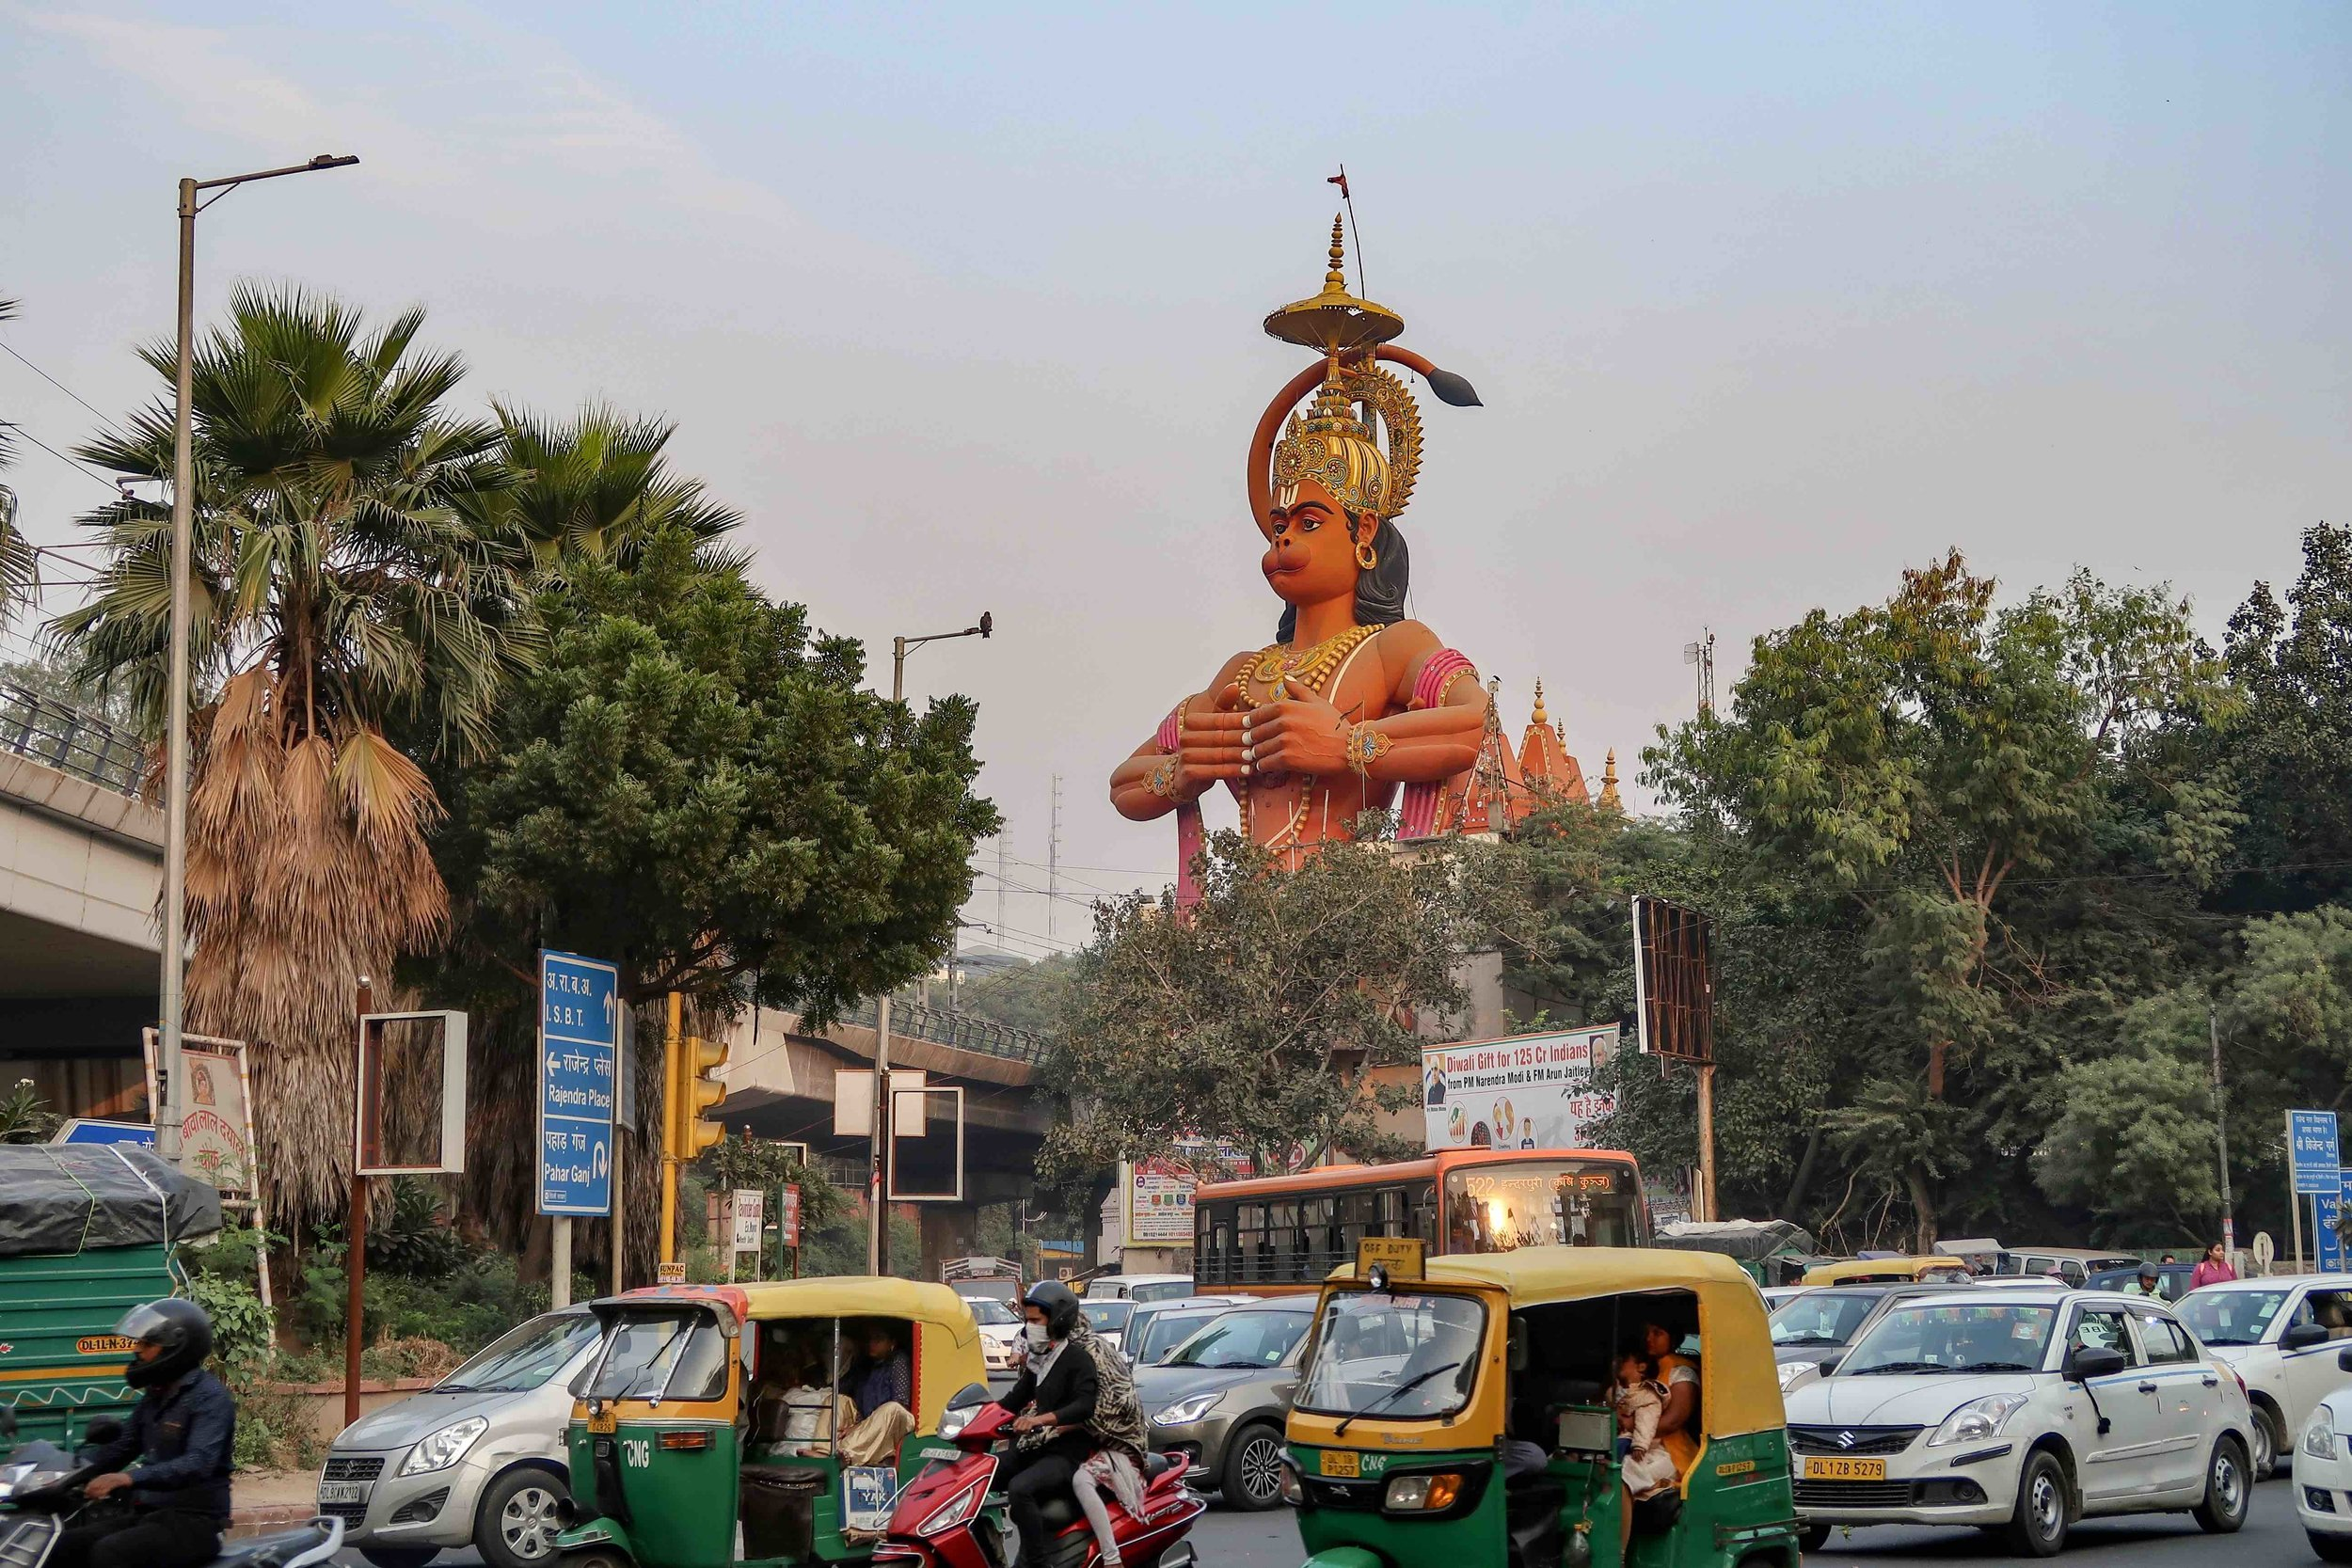 Step inside a monster's mouth in this Hanuman Temple in Delhi. Have a fire paan in Delhi! Or try one of these other unusual things to do in Delhi..